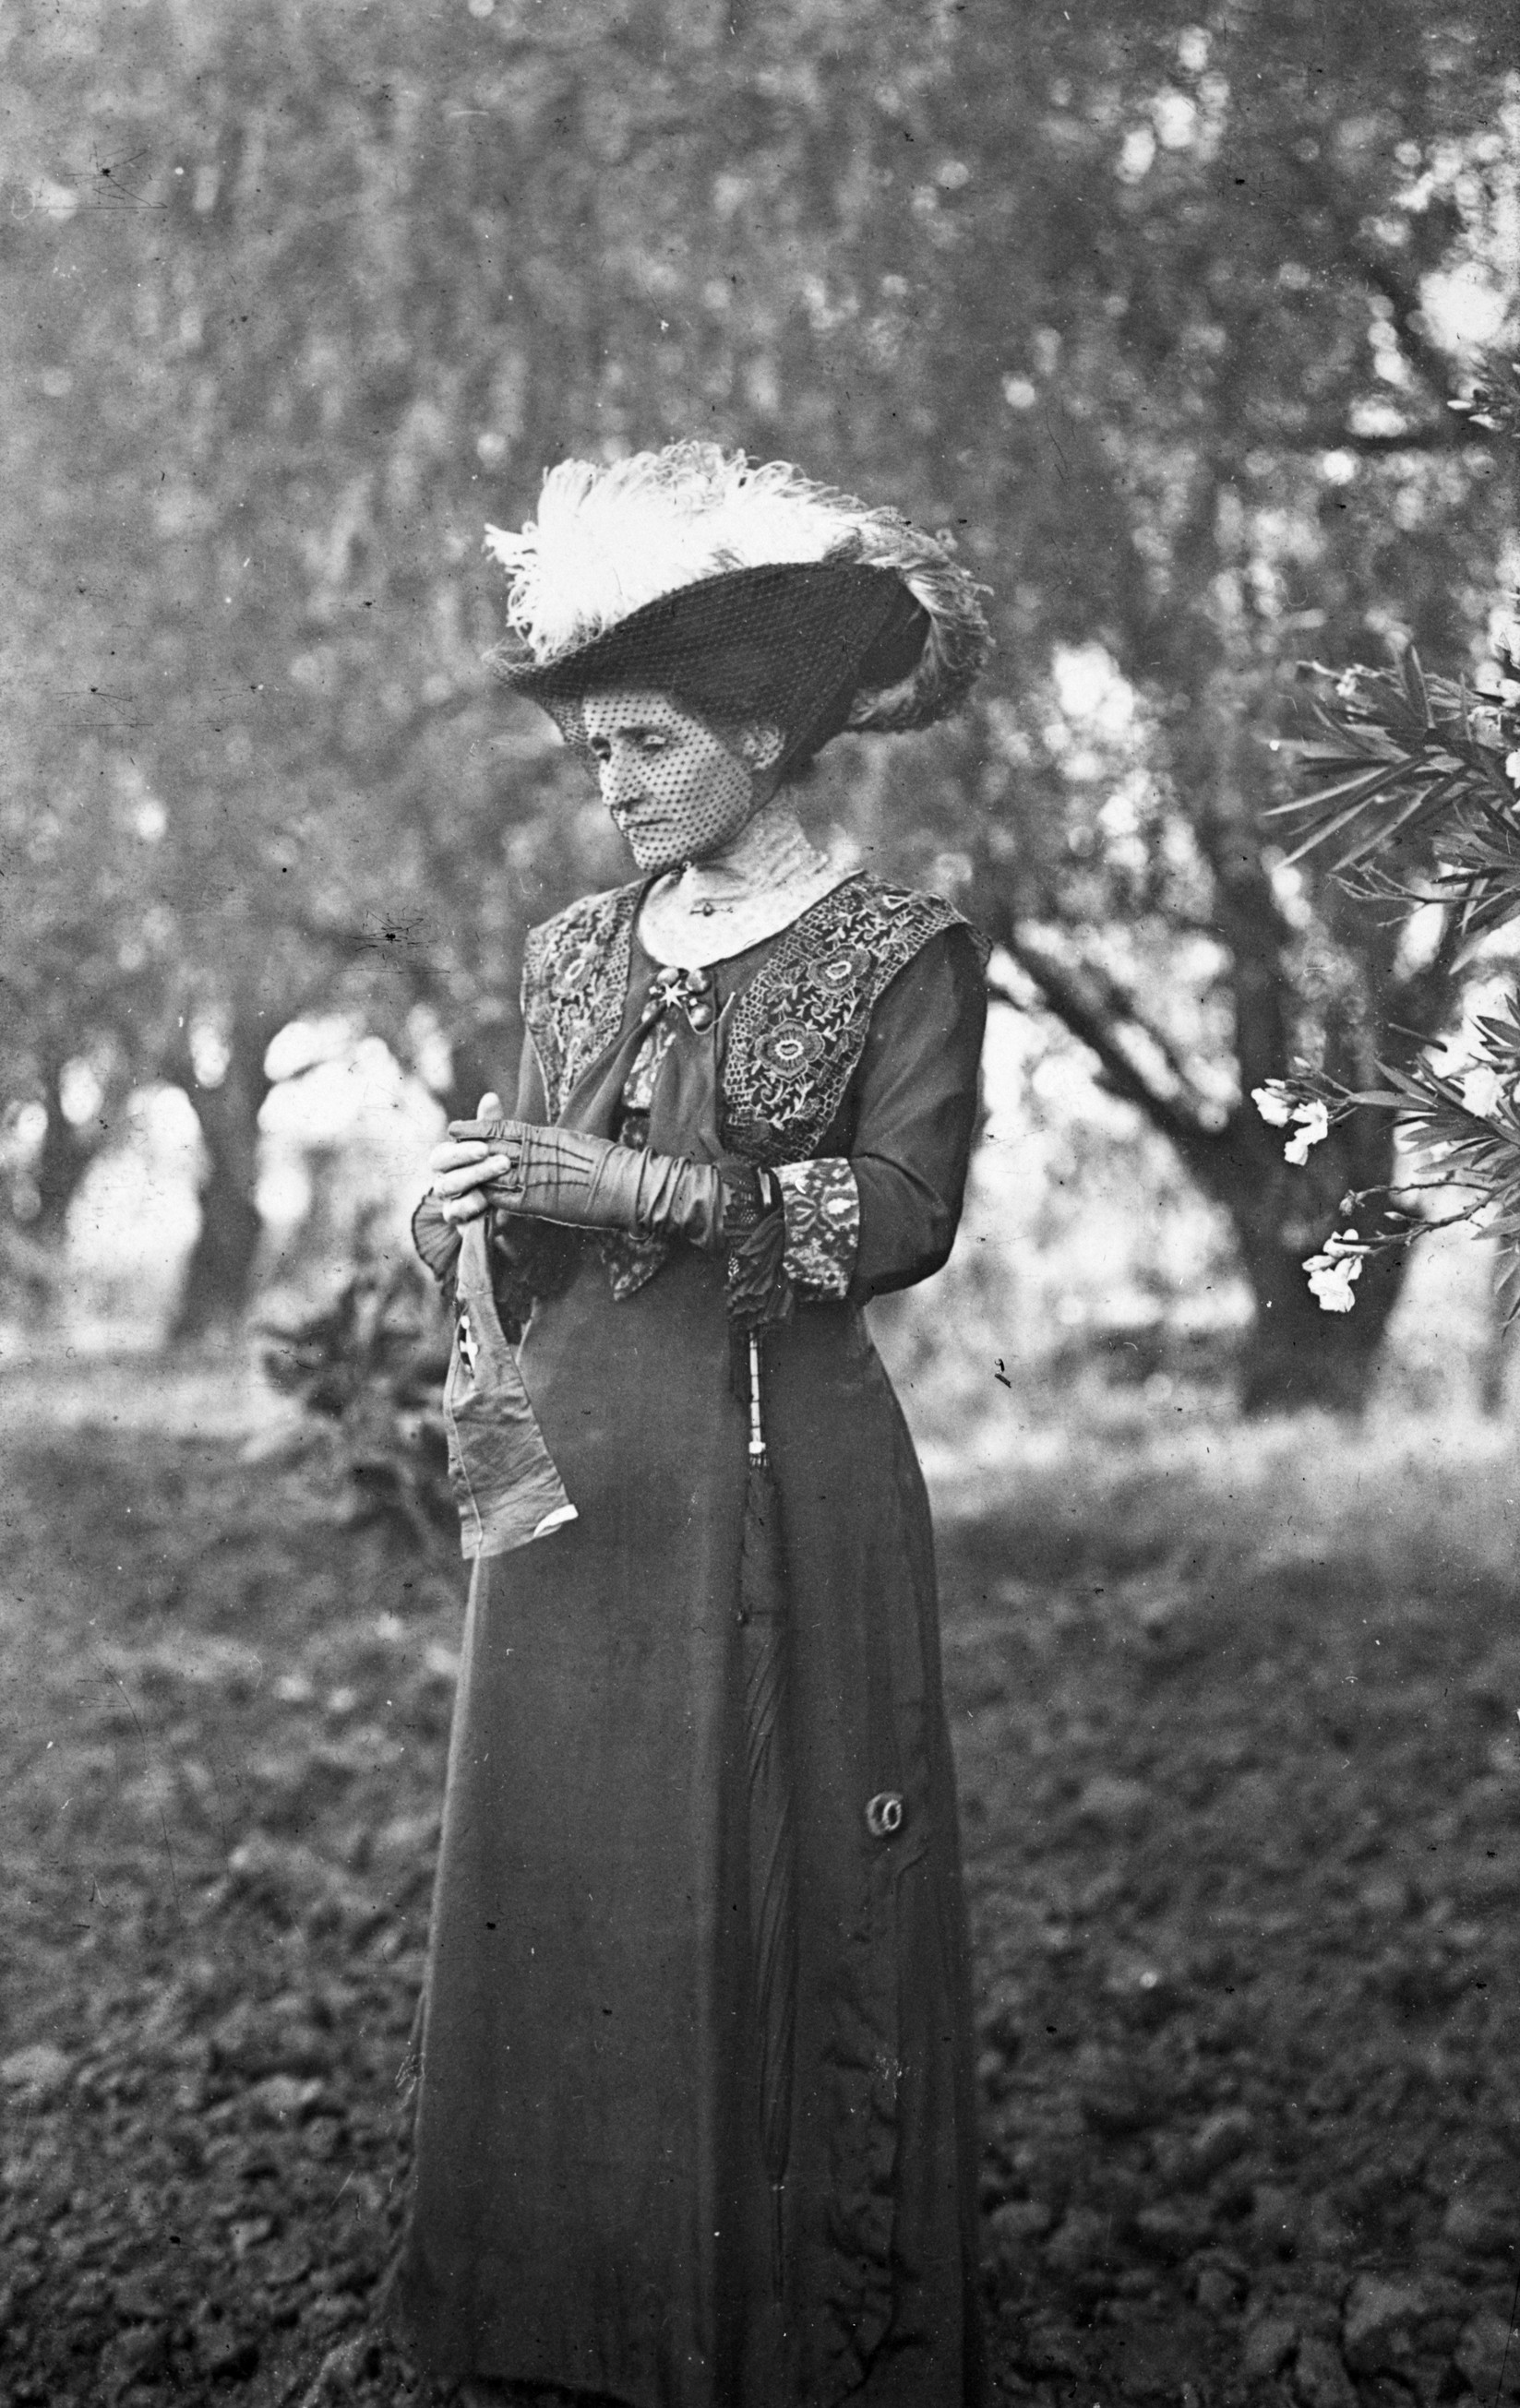 Black and white photograph of a woman in Victorian dress with an elaborate hat adorned with bird feathers. She stands in a forest.